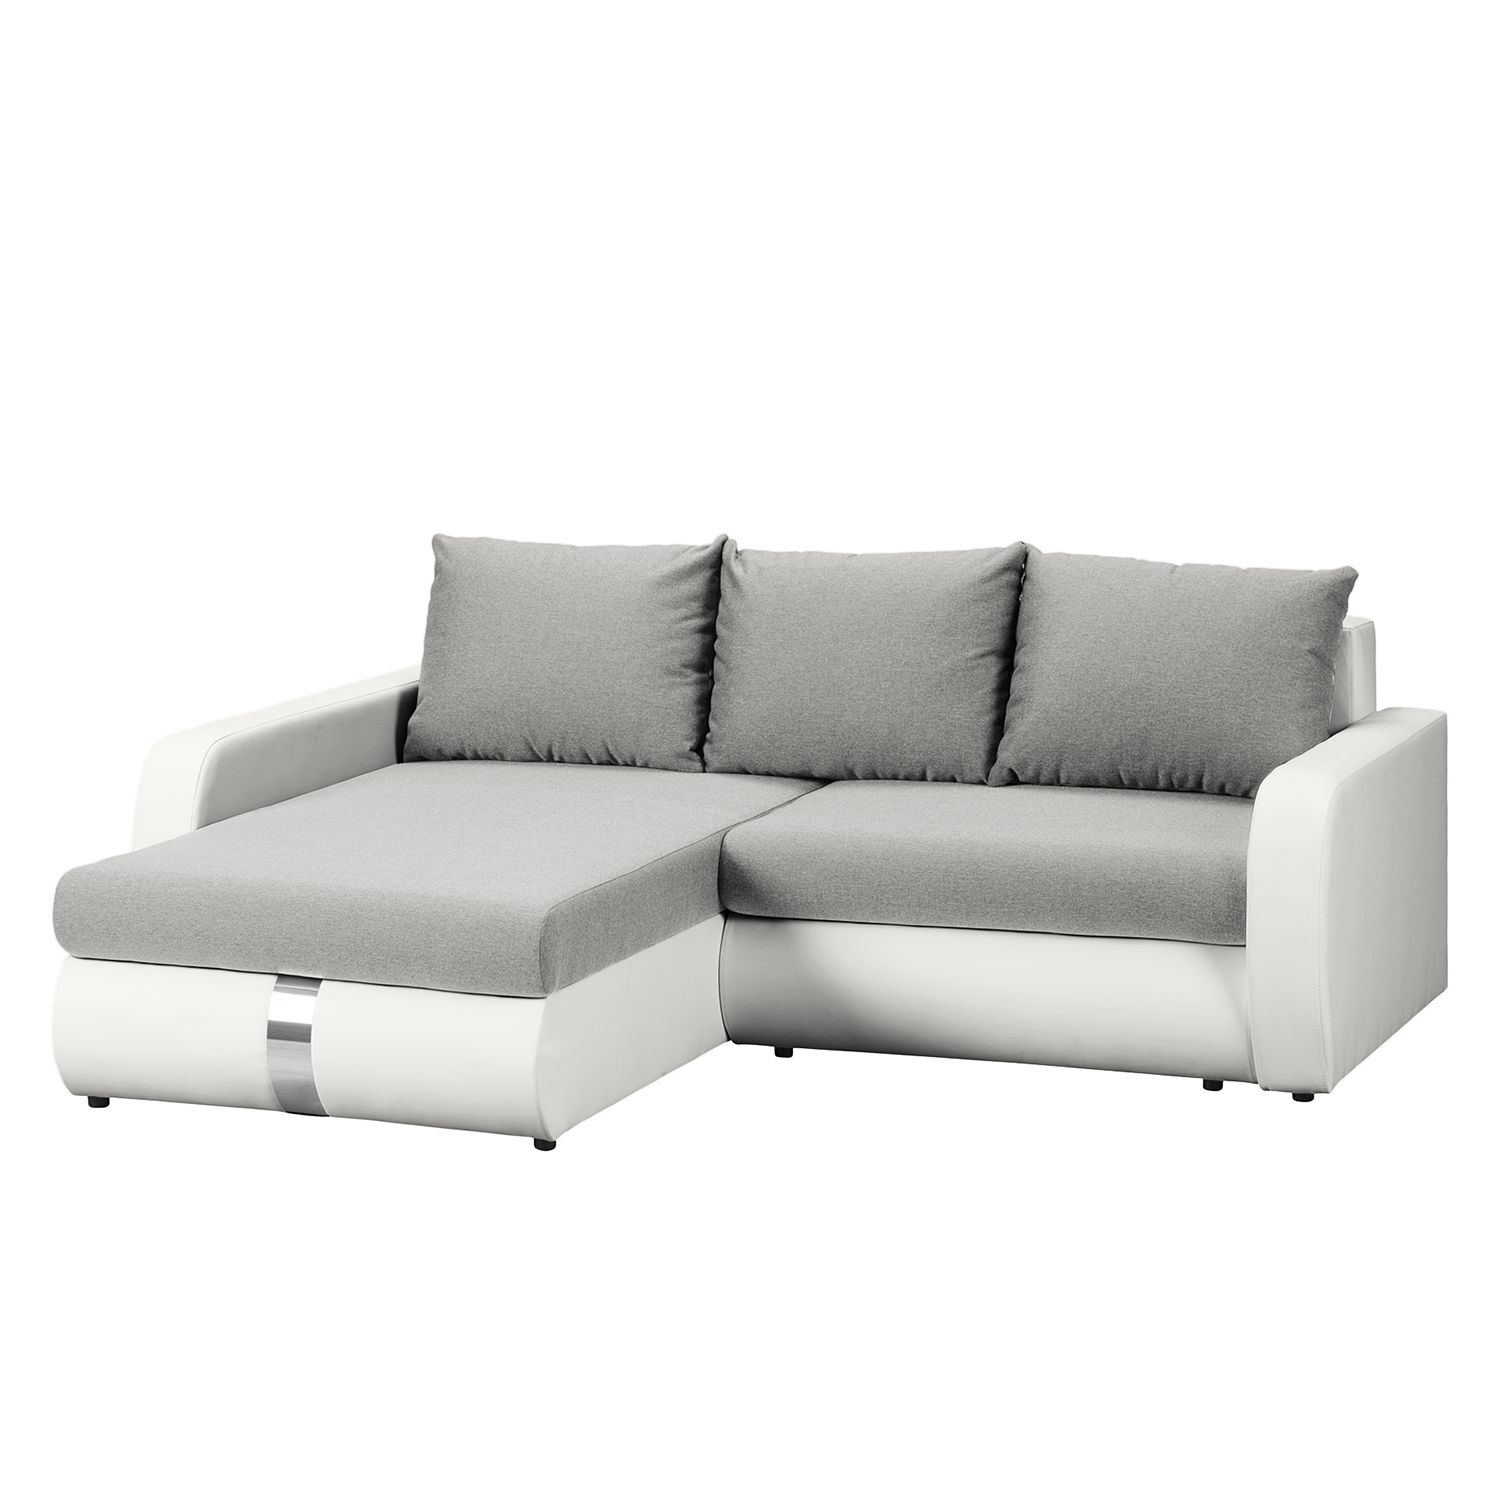 Ecksofa huelva for Ecksofa trends